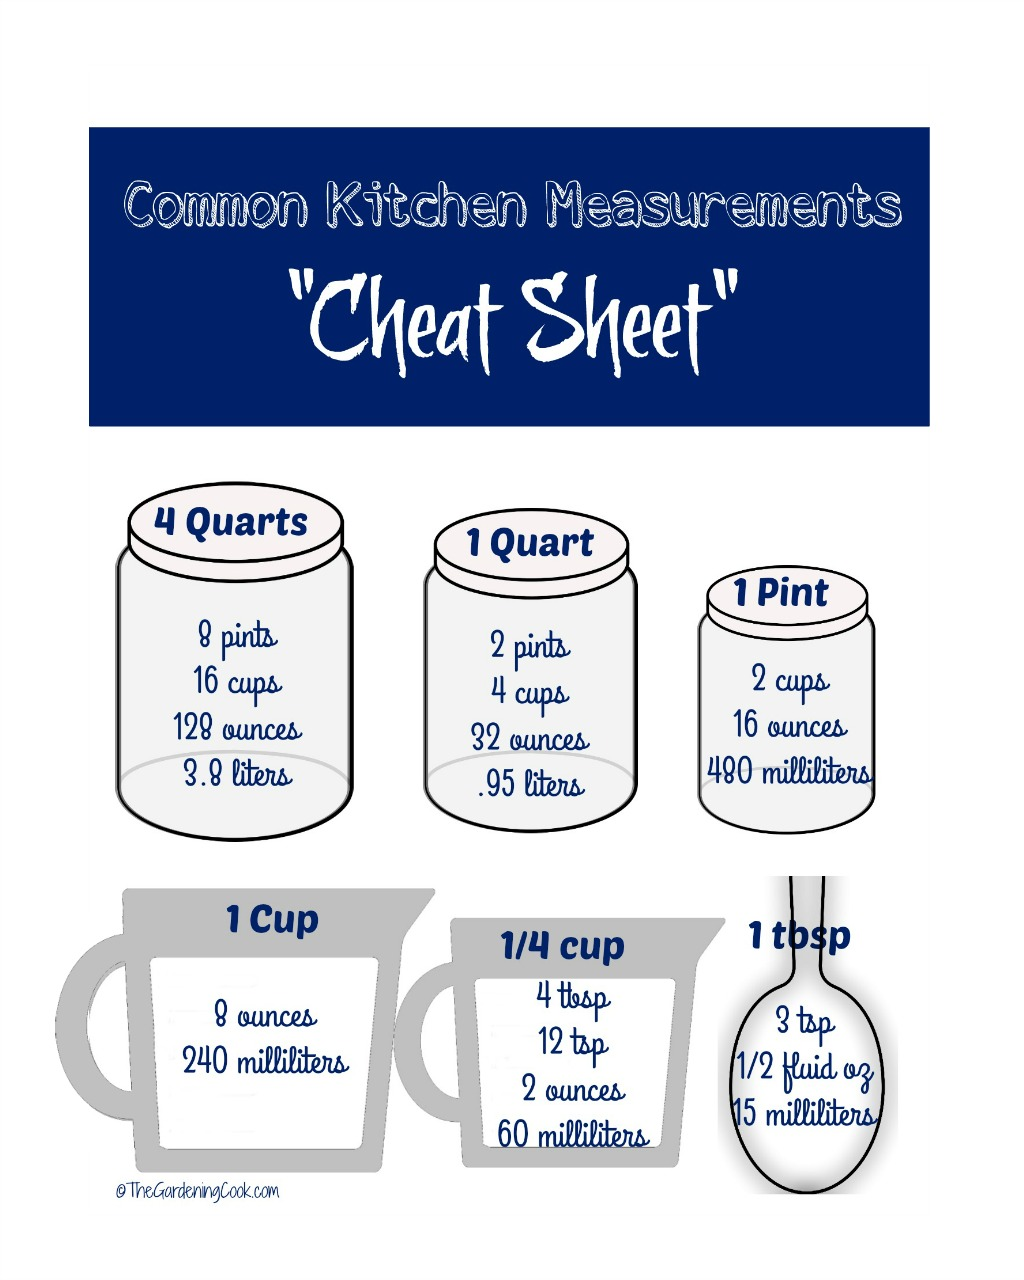 This kitchen cheat sheet gives some common kitchen conversions.